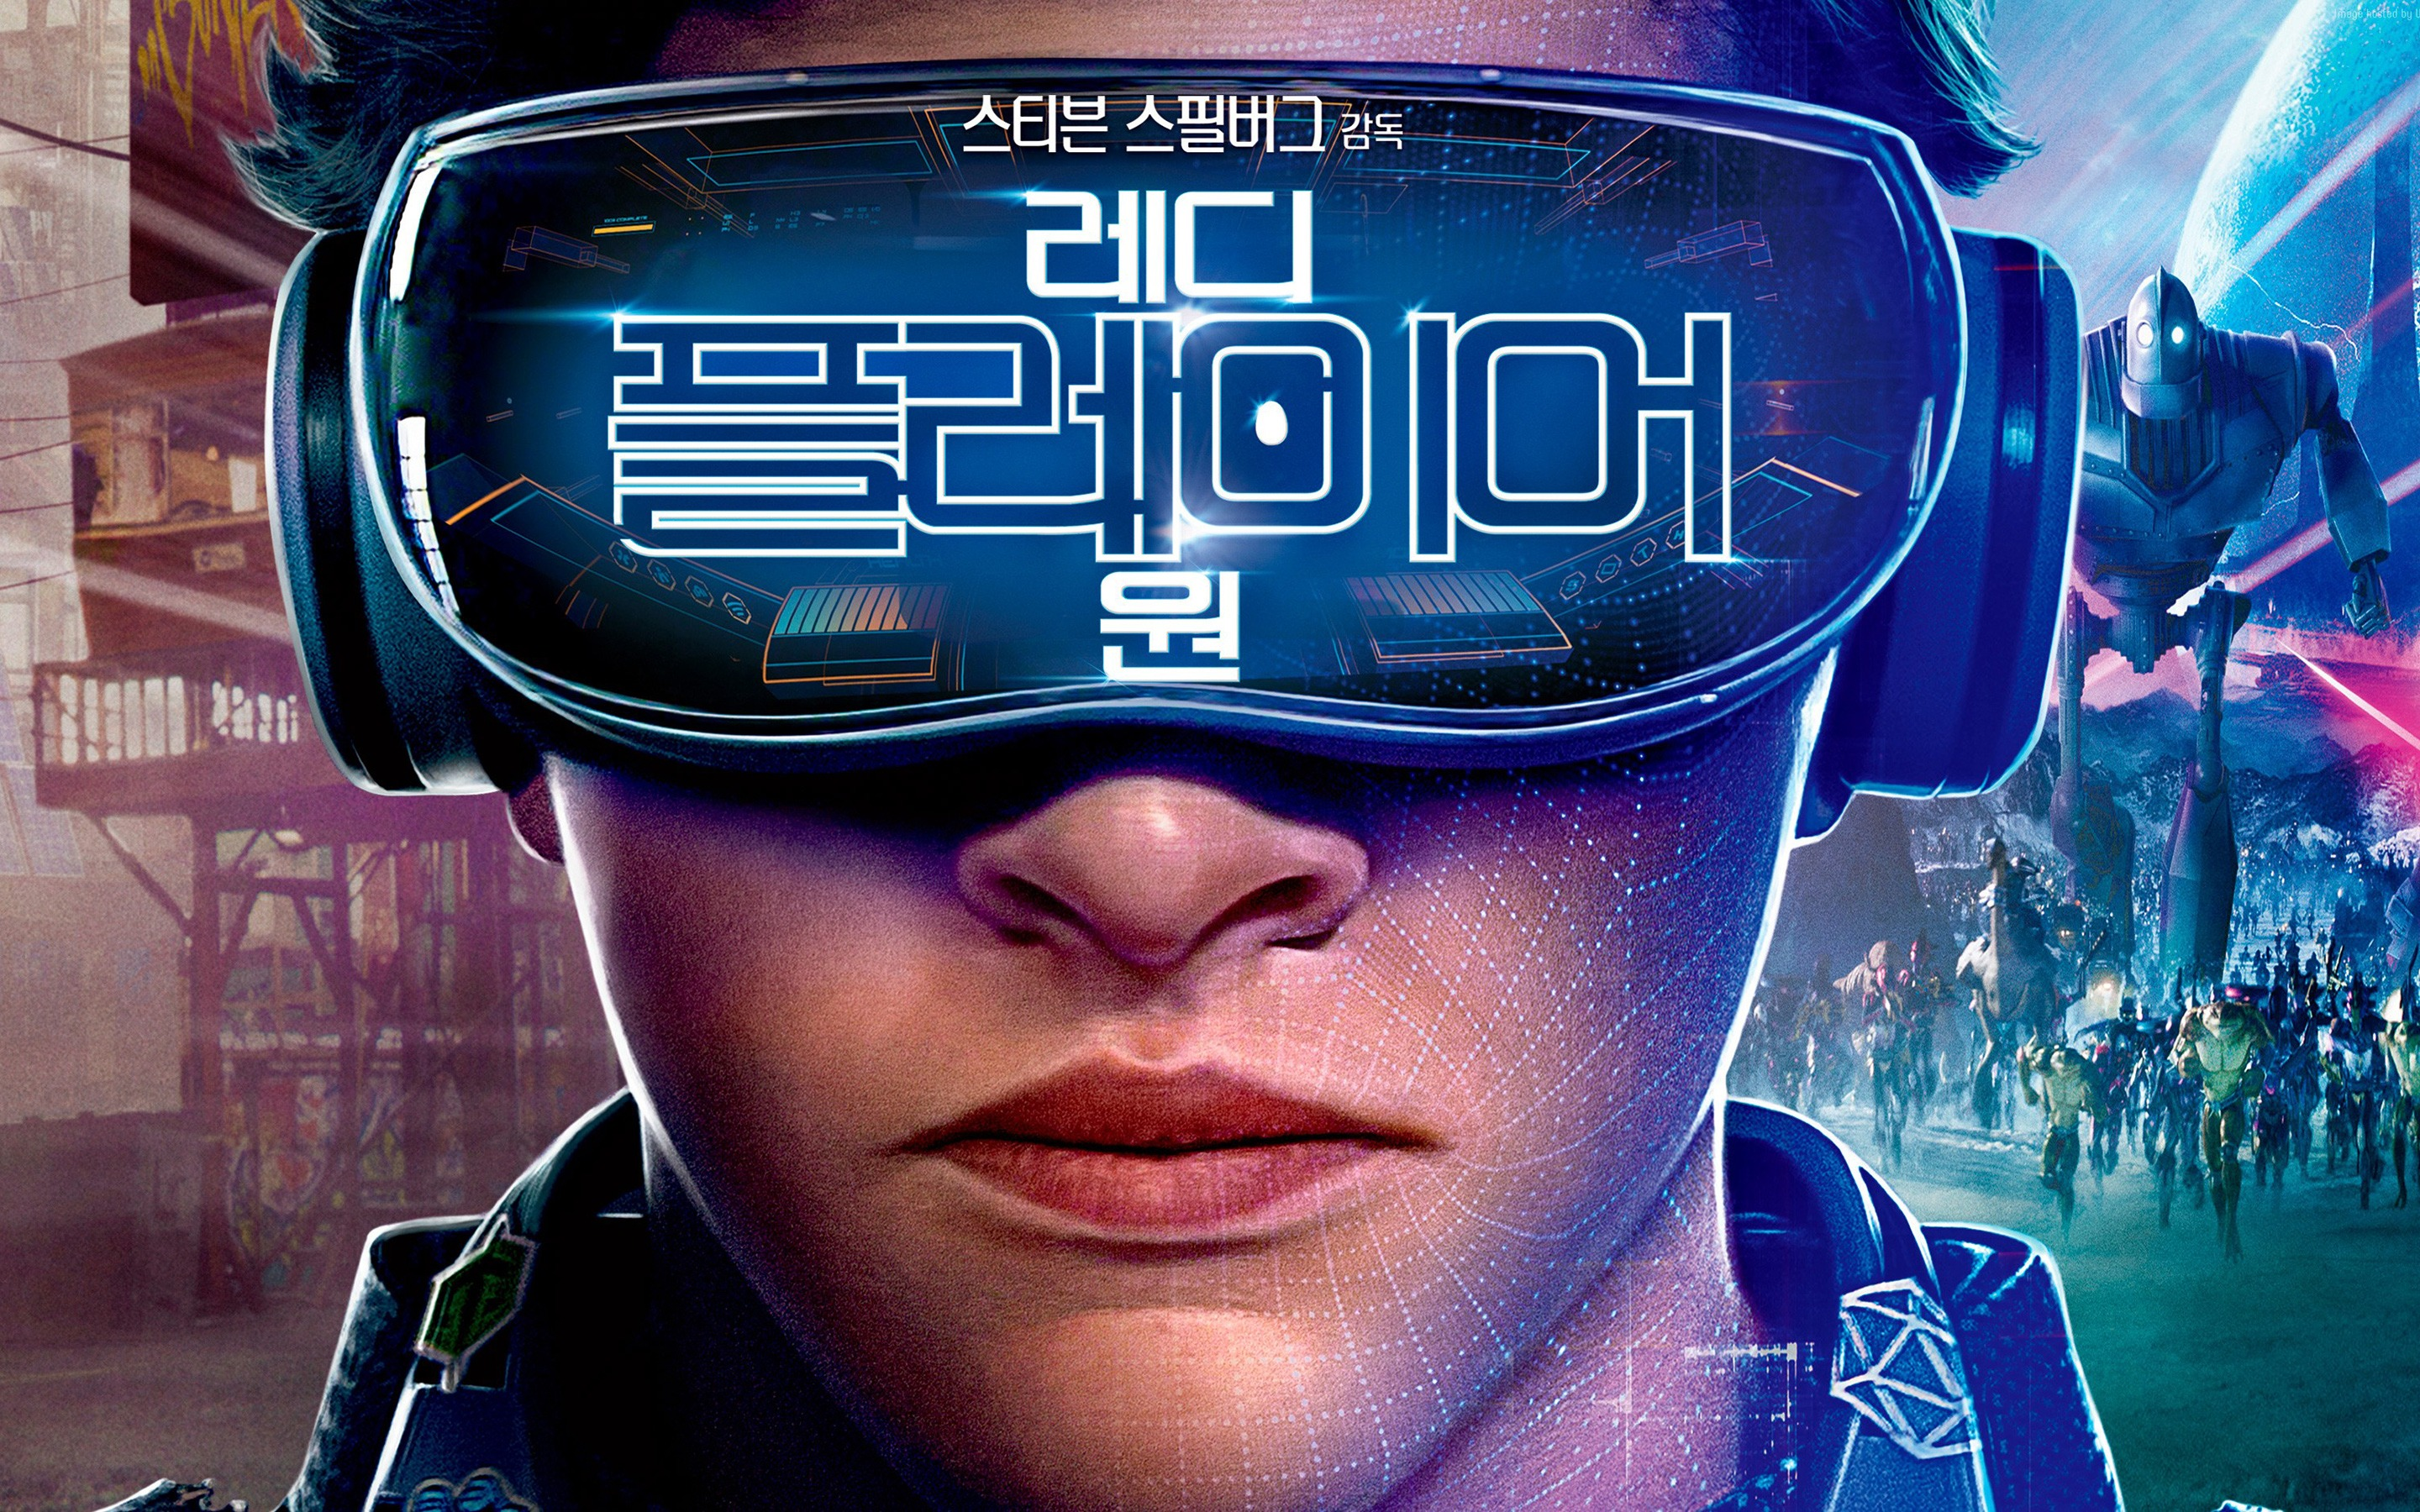 Ready Player One Vr Movie Poster Wallpapers and Free